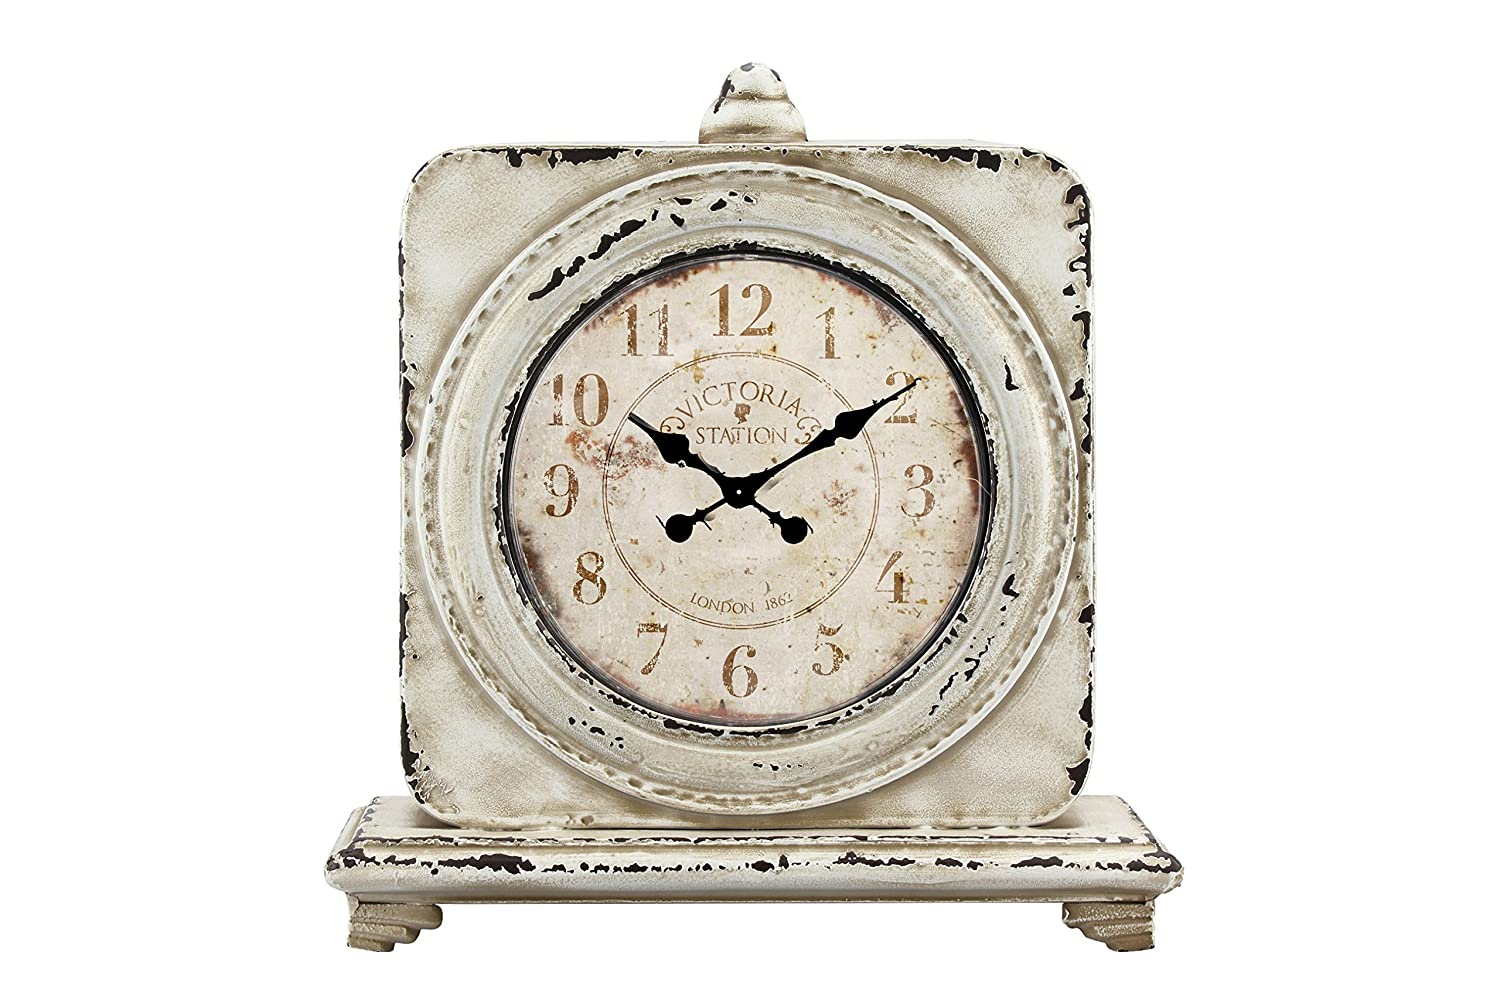 Stonebriar Victoria Station Table top clock Off white